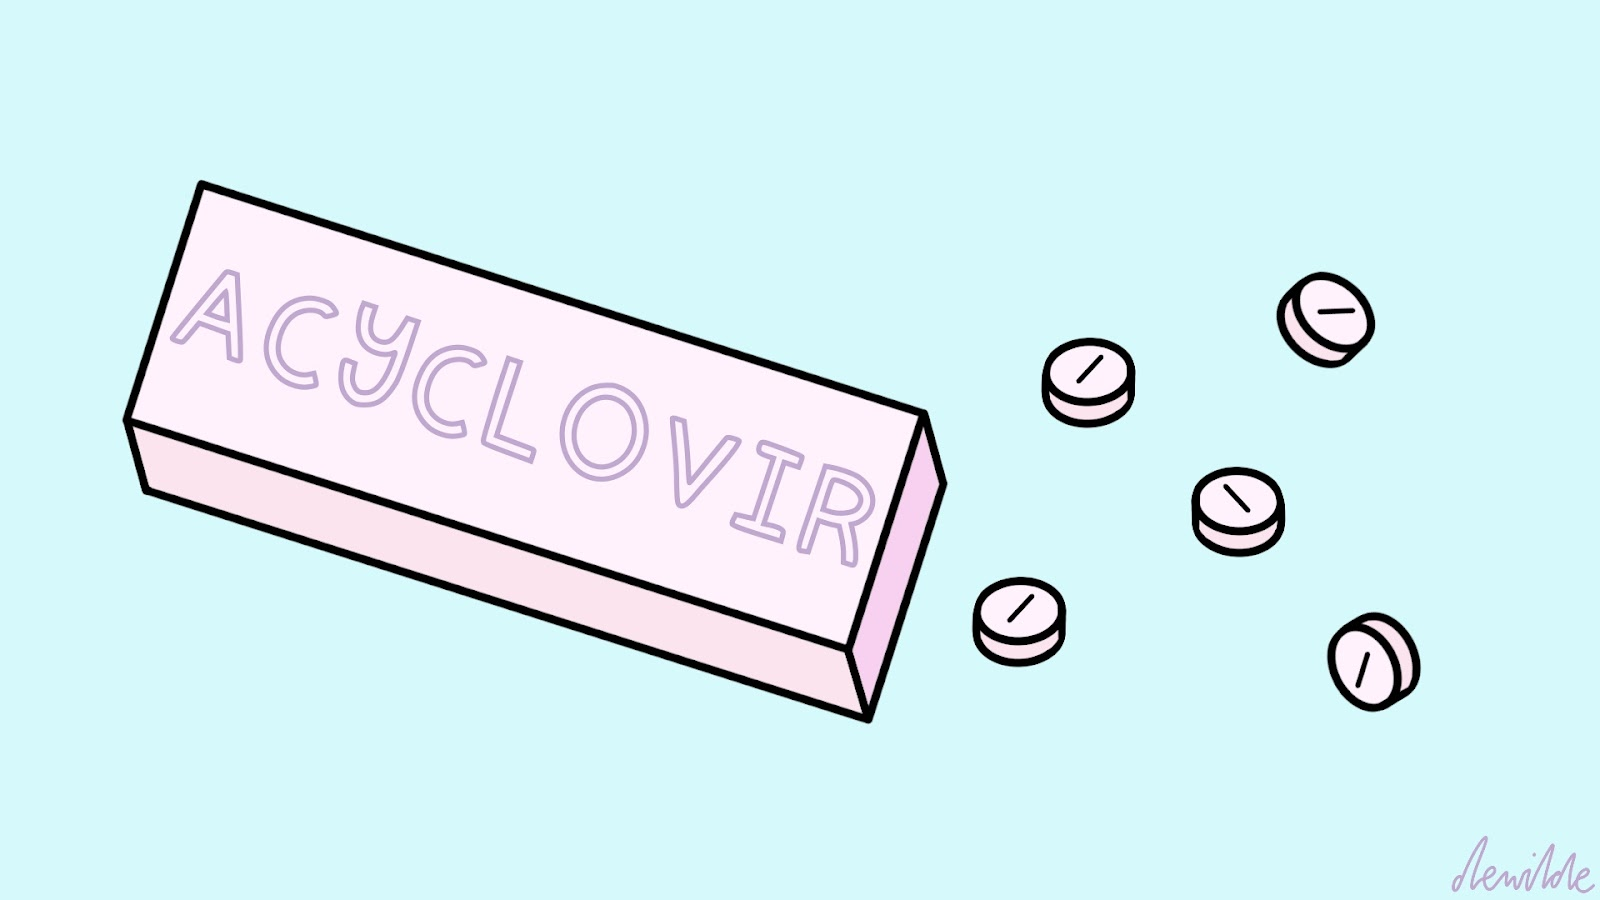 Illustration by Darcy Rae of Acyclovir, an anti-viral drug for Herpes